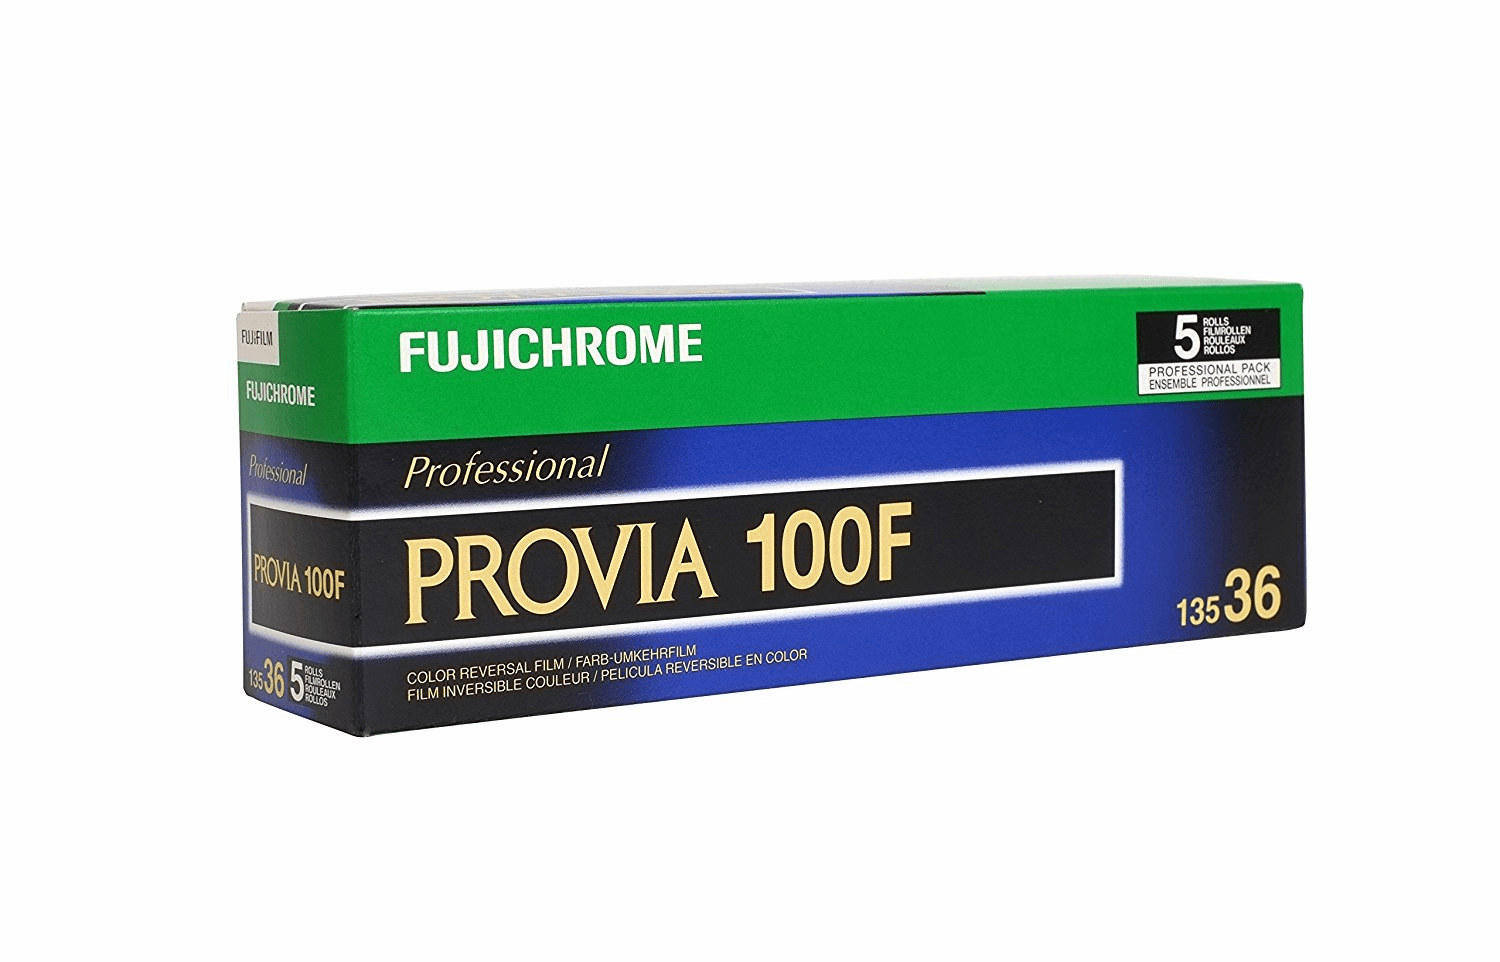 Fujichrome Provia 100F RDPIII 35mm x 36 exp 5 Roll Pack